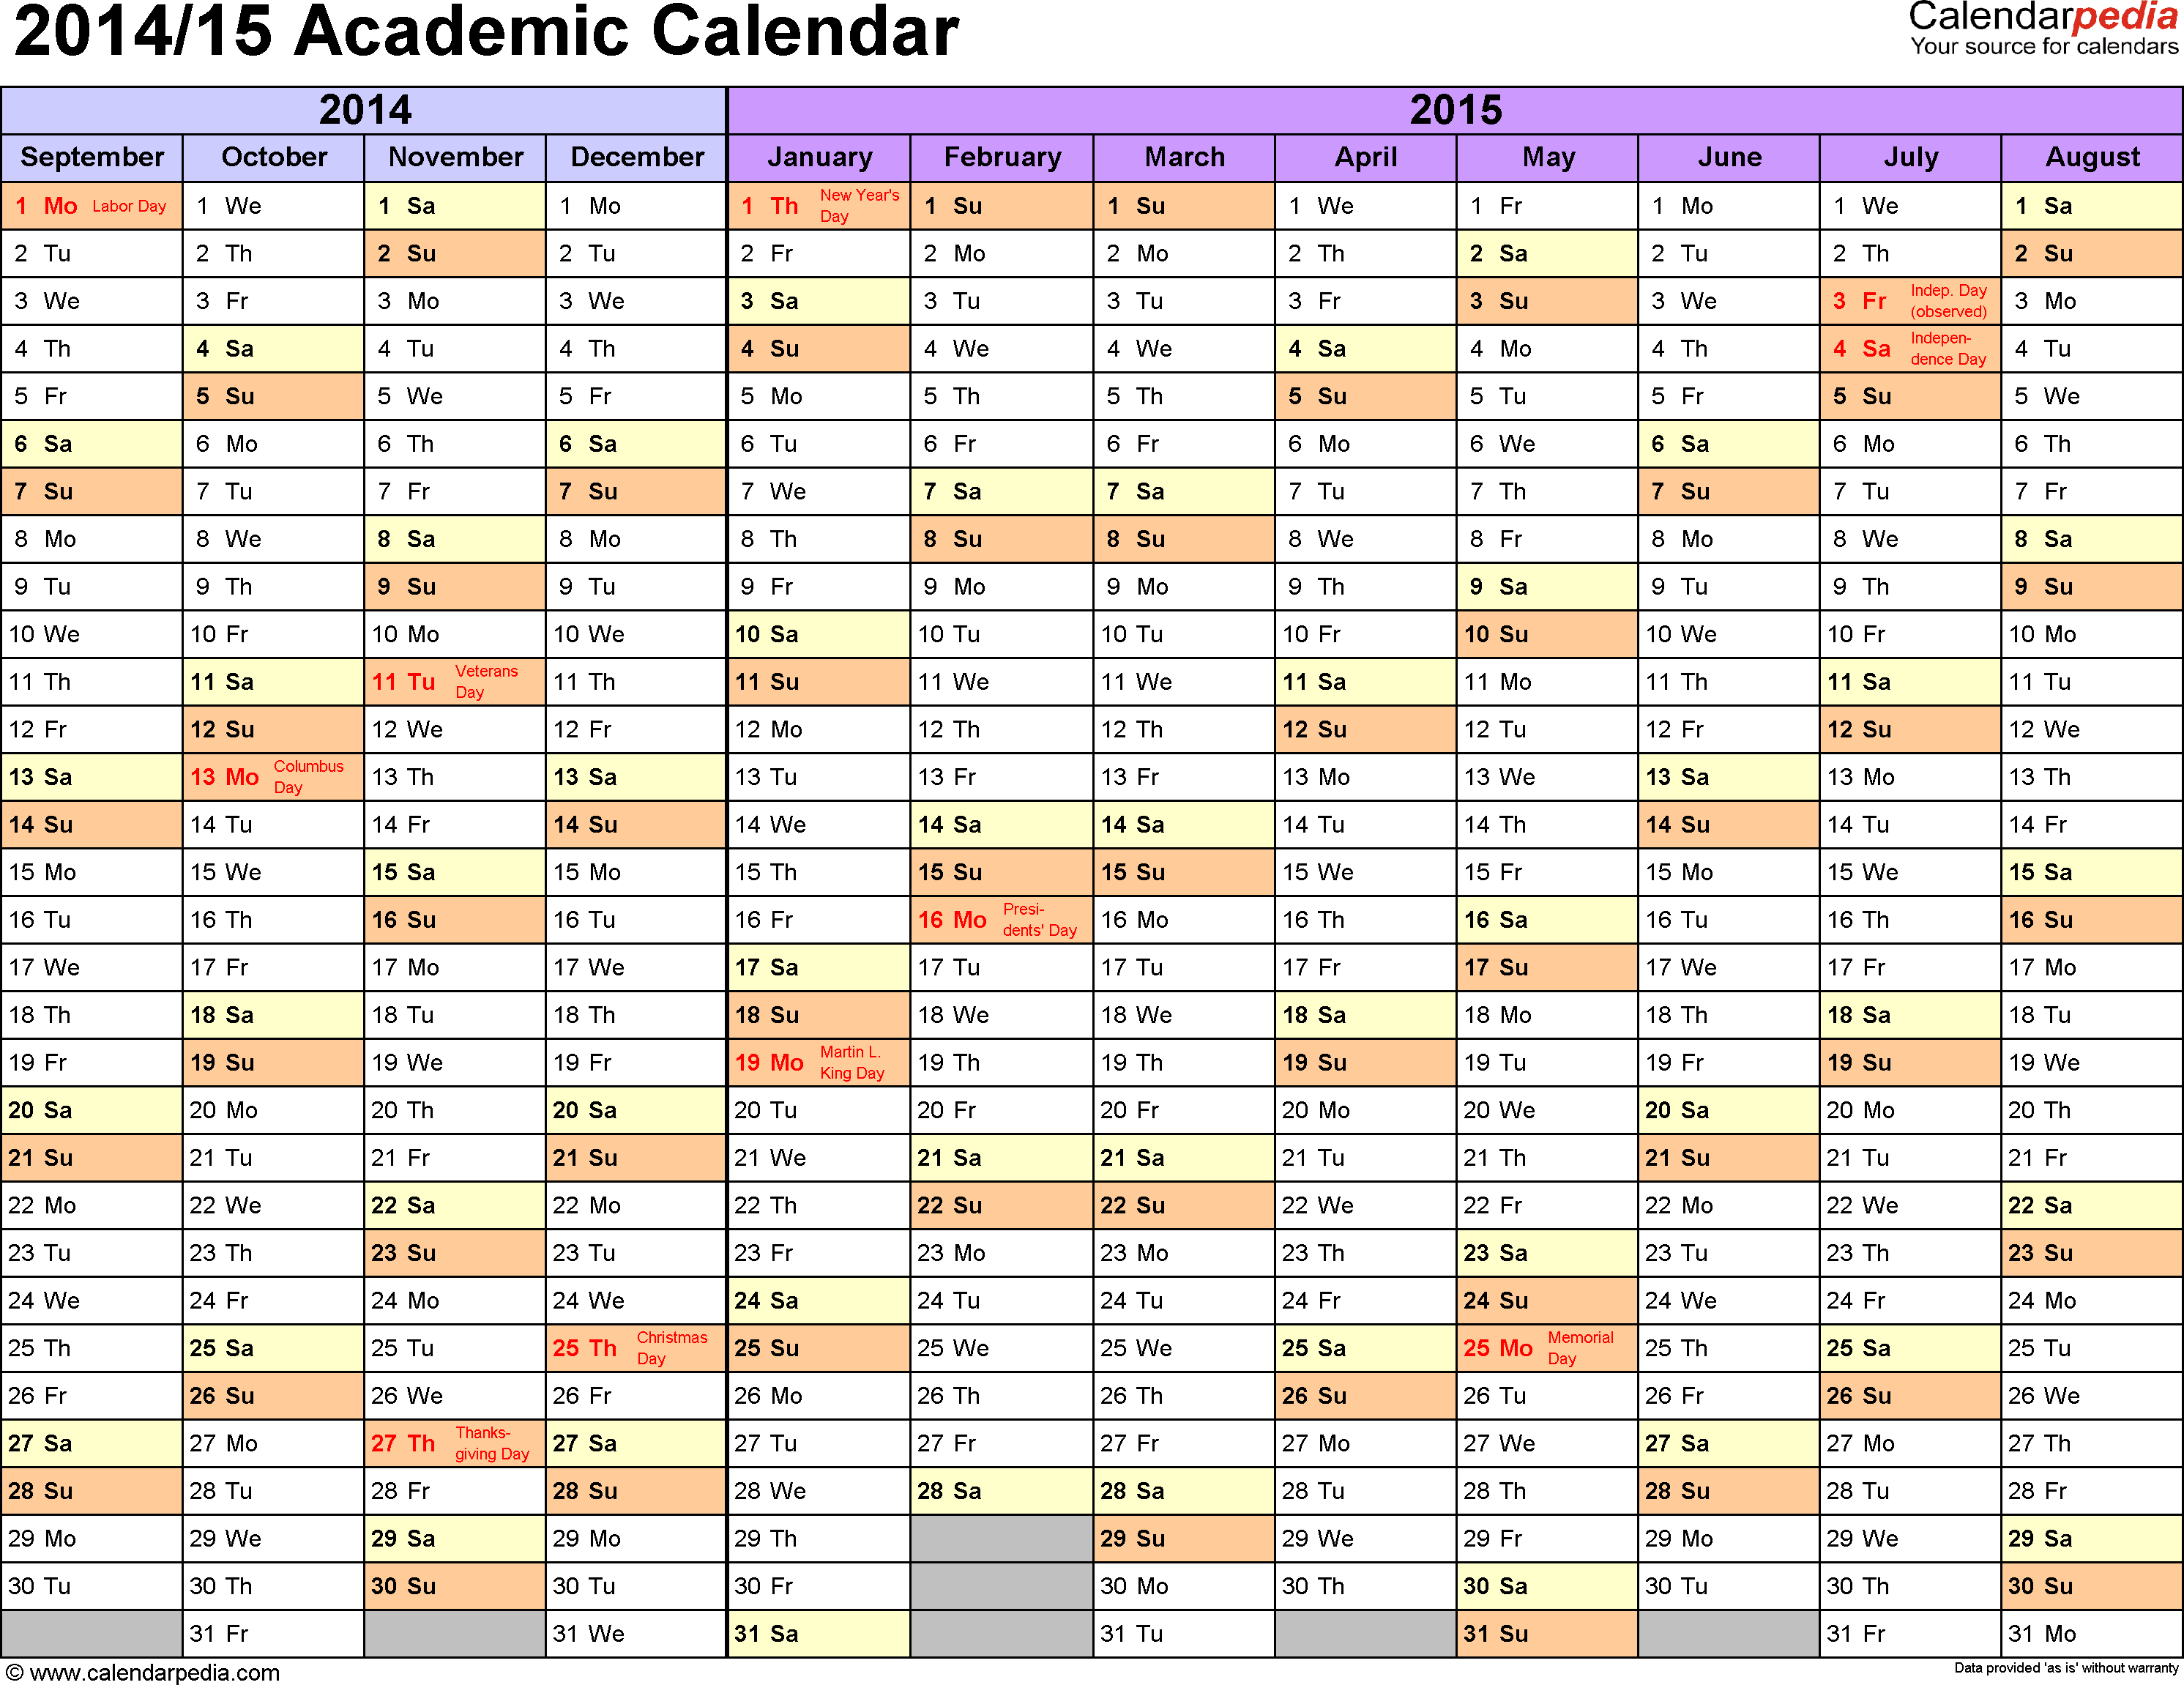 Template 1: Academic calendar 2014/15 in PDF format, landscape, 1 page